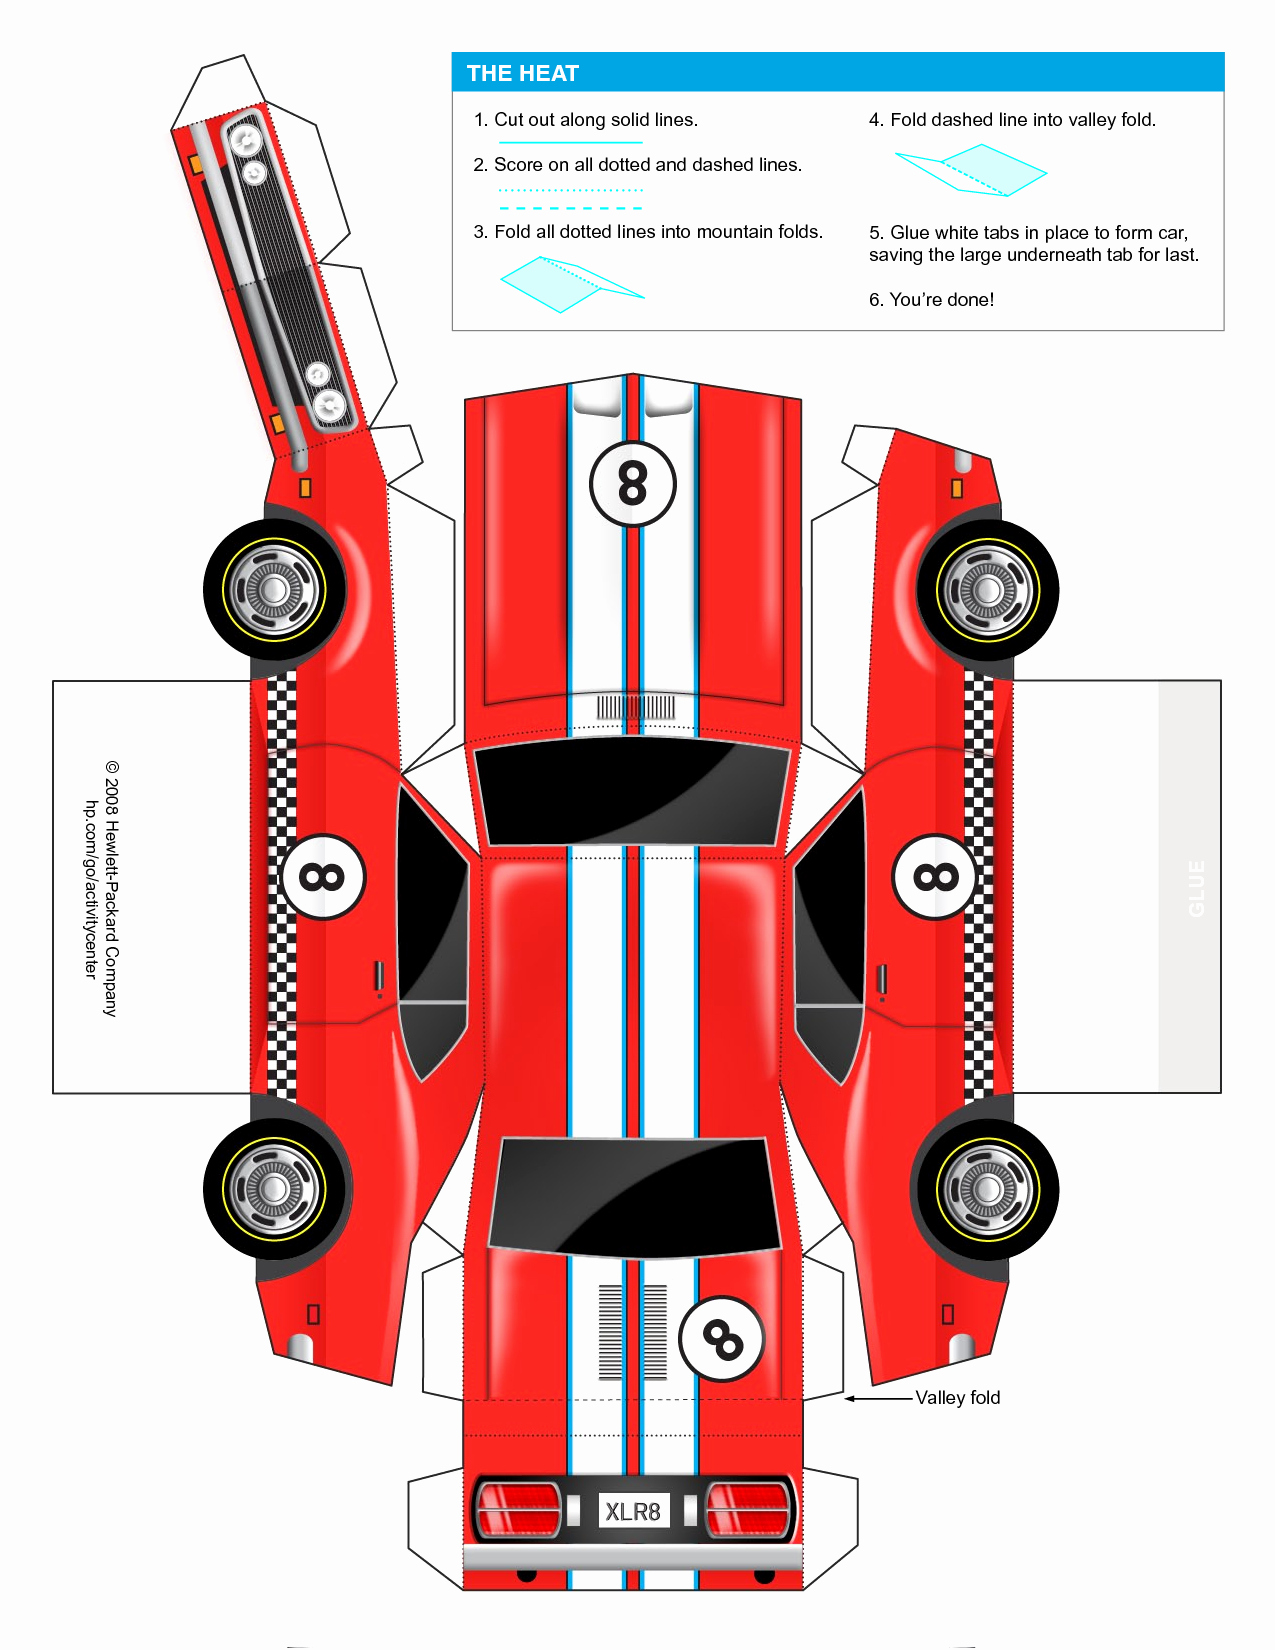 Paper Cut Out Cars Beautiful Car Cut Out Template for Kids Google Search